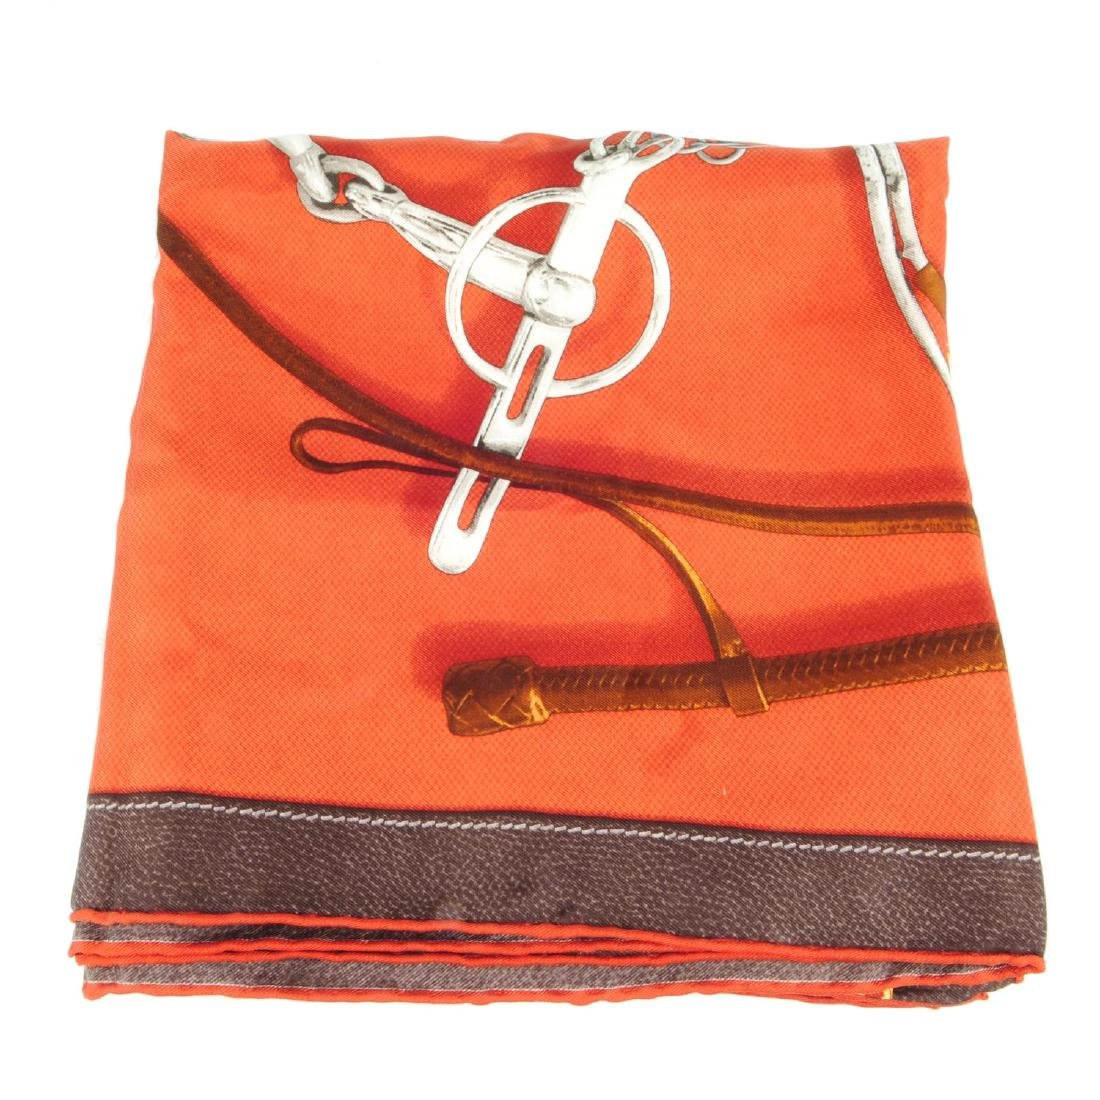 HERMÈS - a 'Projets Carres' scarf. Created by Henri